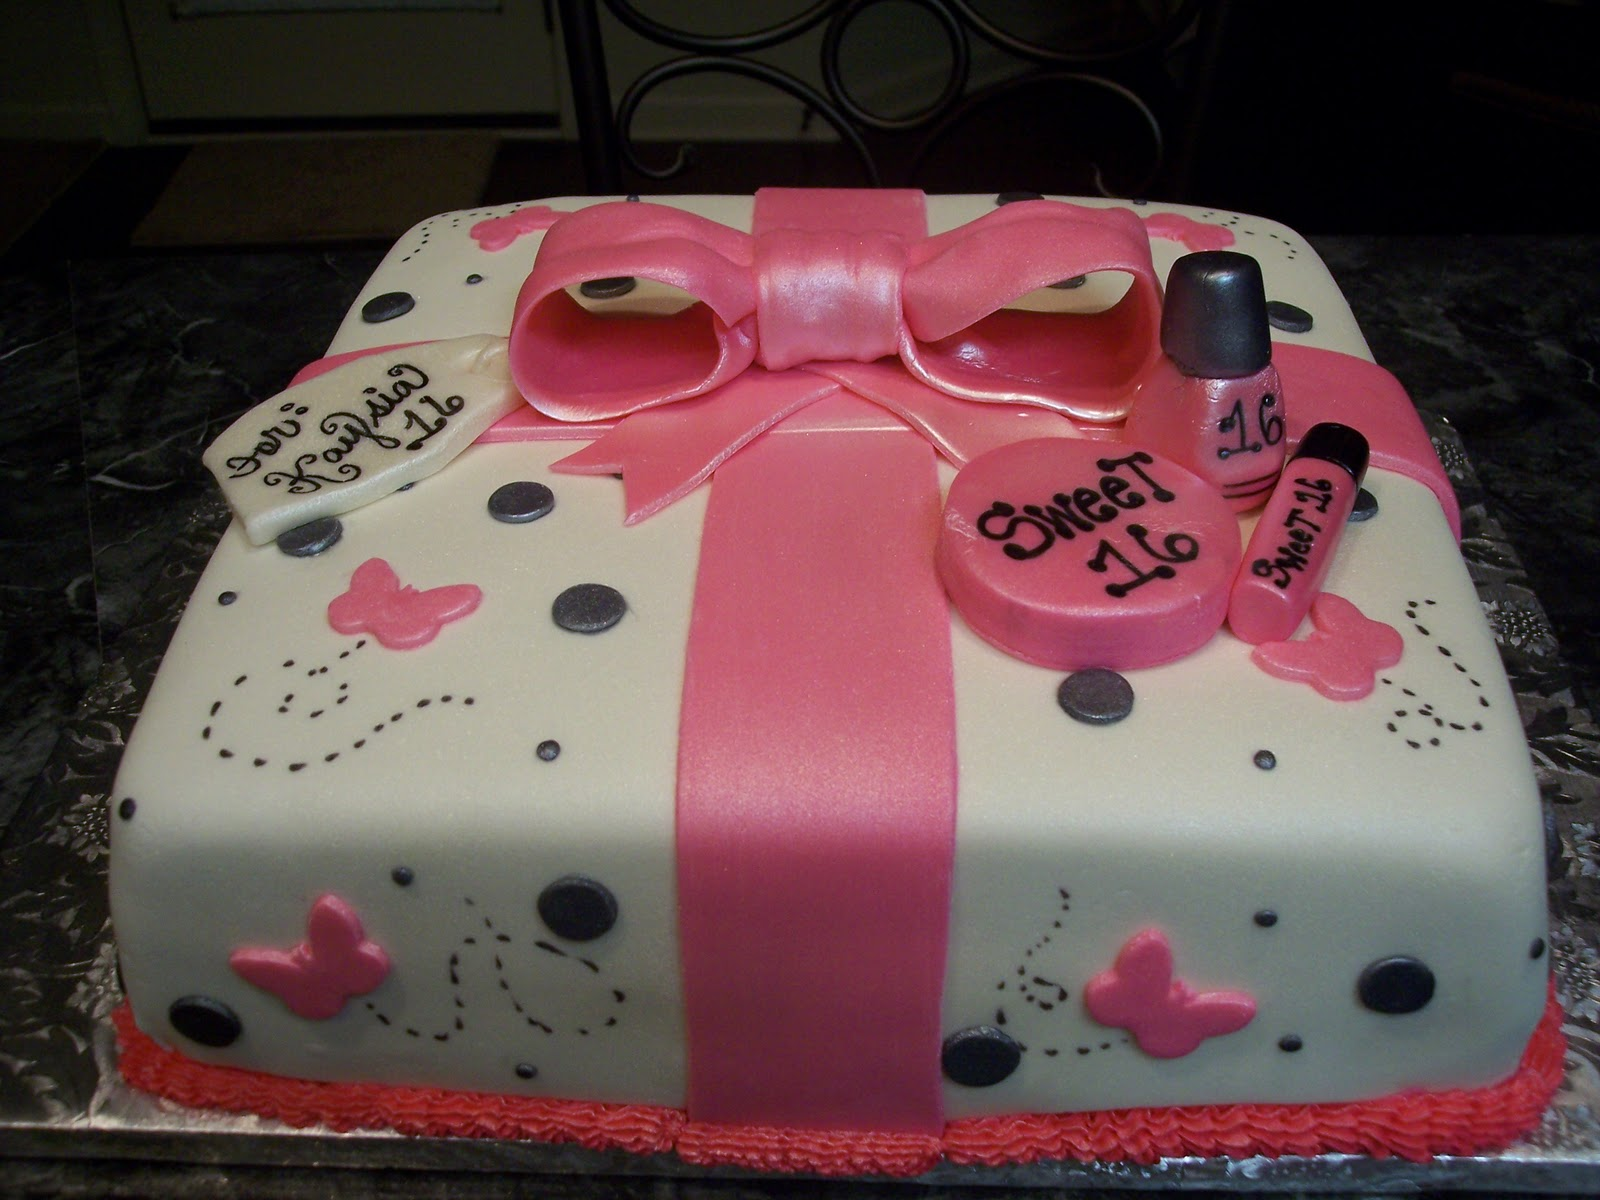 Mymonicakes pink black butterfly gift box cake with sweet 16 pink black butterfly gift box cake with sweet 16 accents negle Images